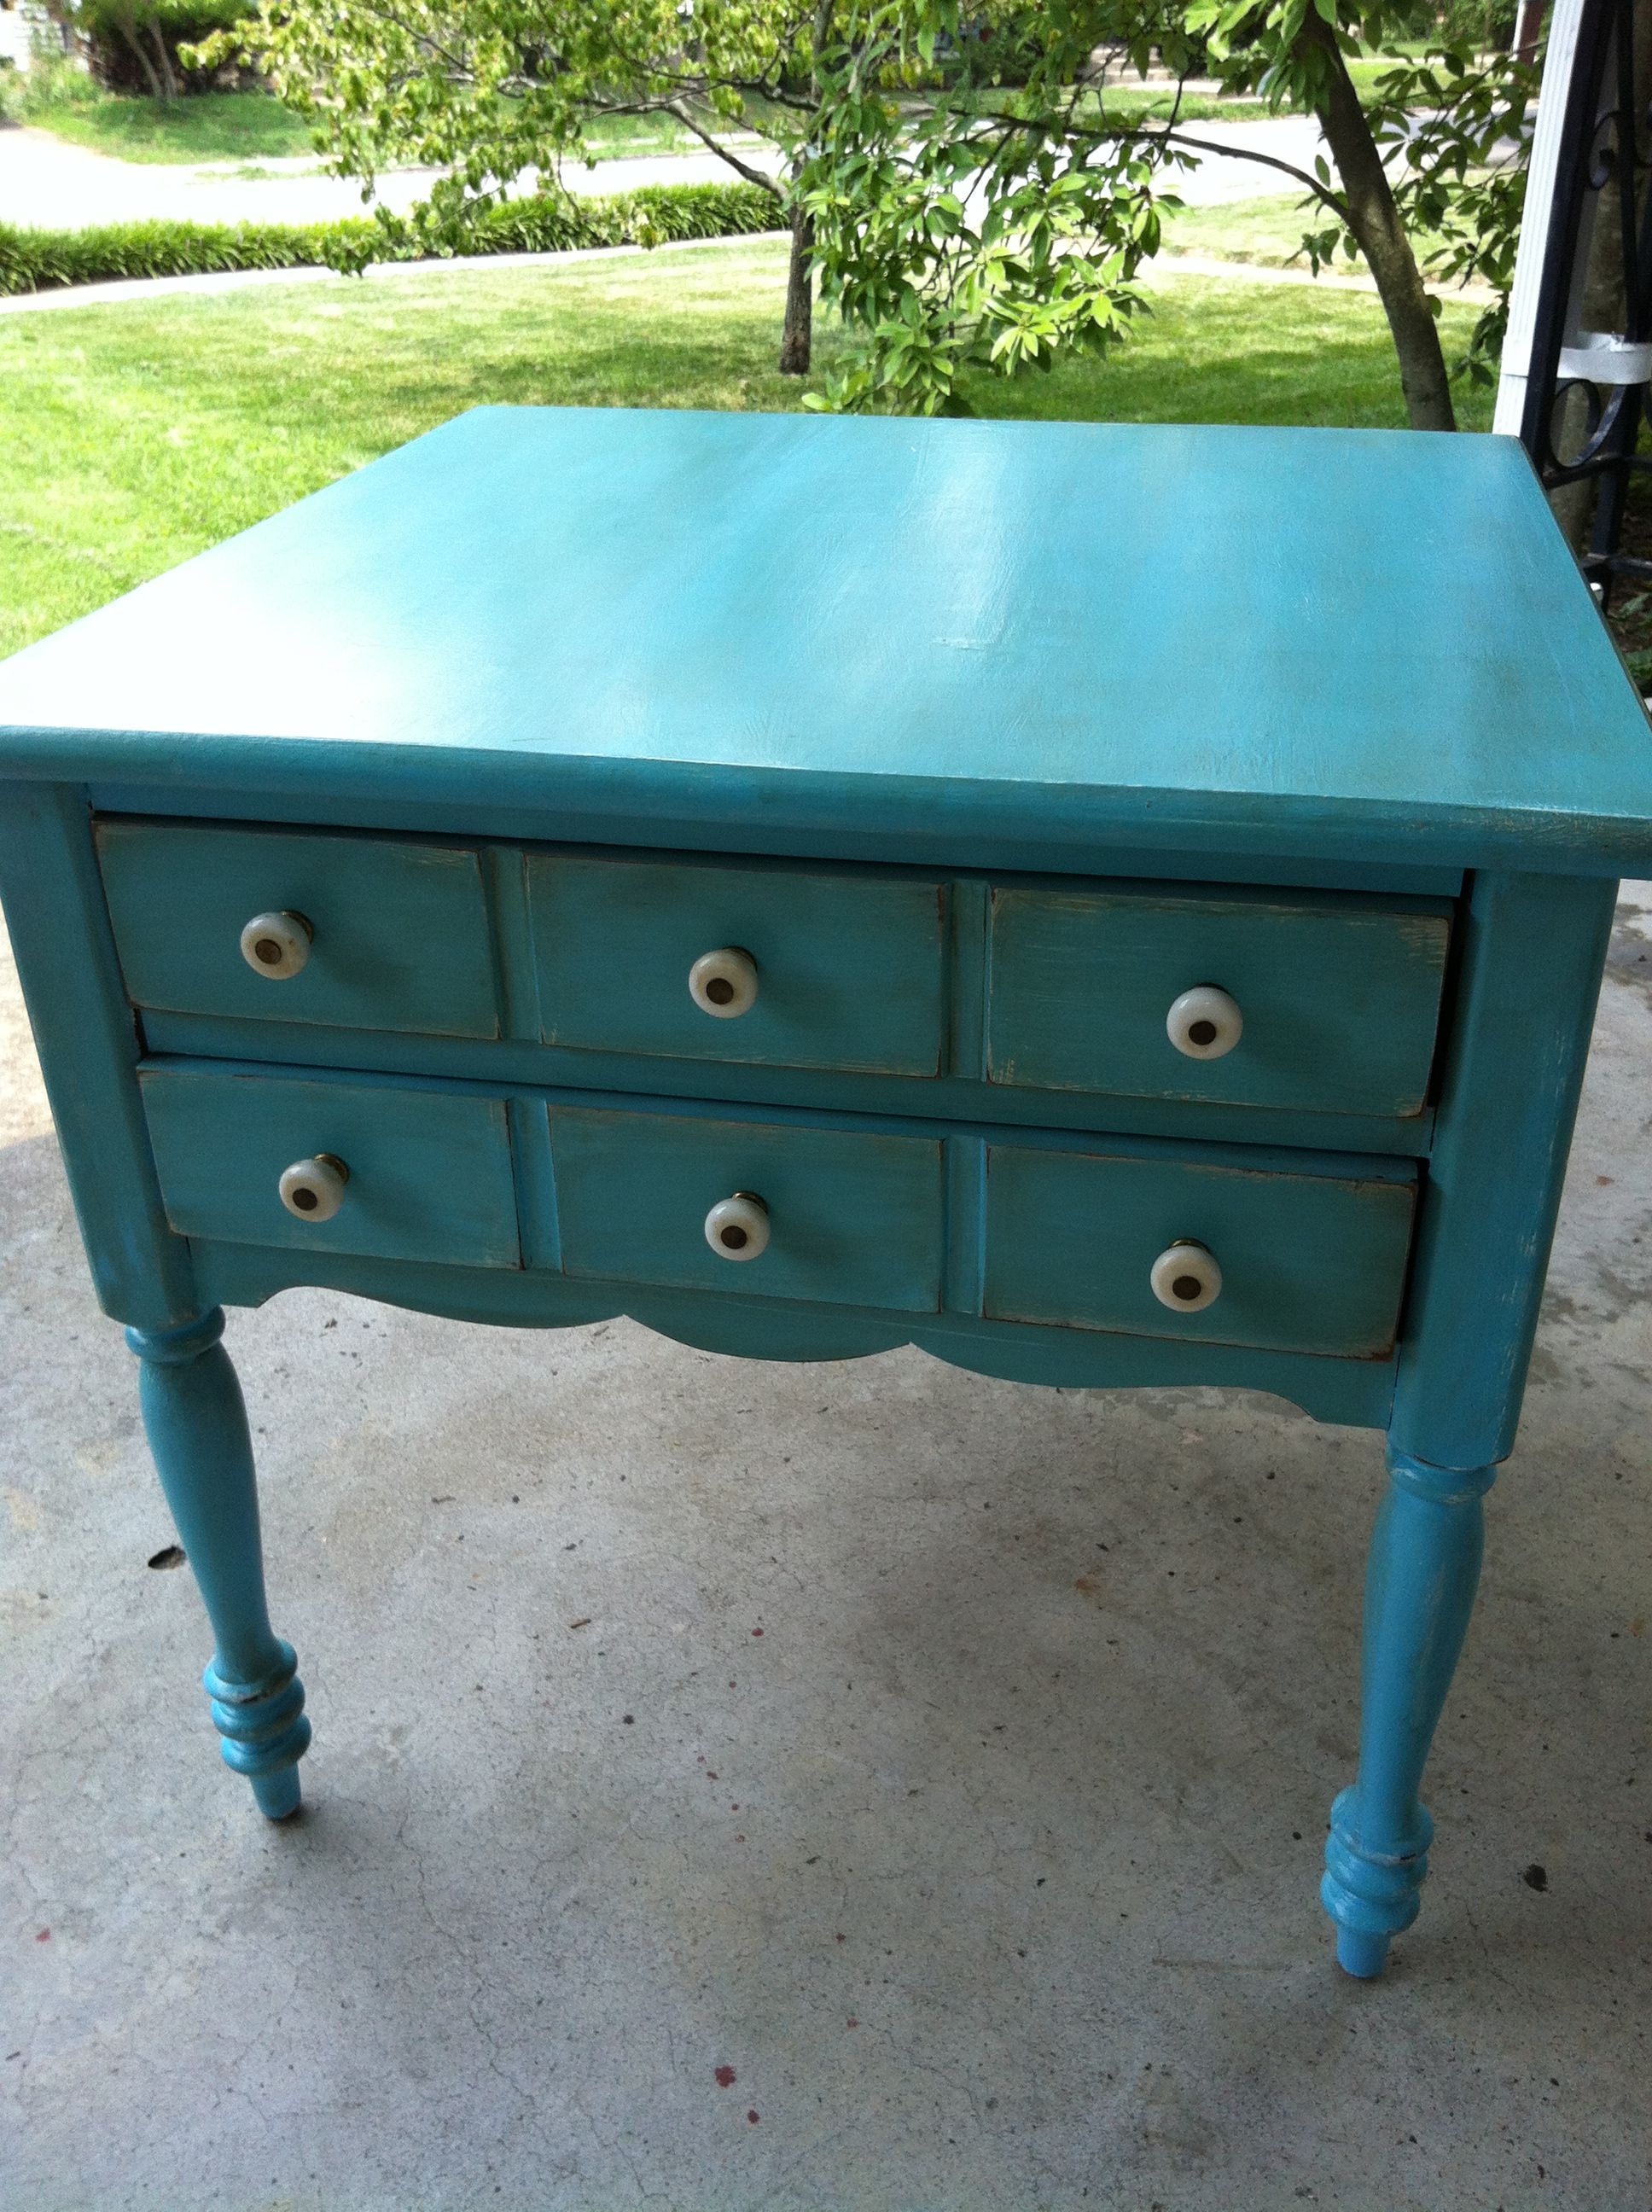 diy repainted and distressed end table paint tables refinished universal furniture blair shaker cherry tall narrow sofa red glass nest ashley chaise lounge mirrored bedroom